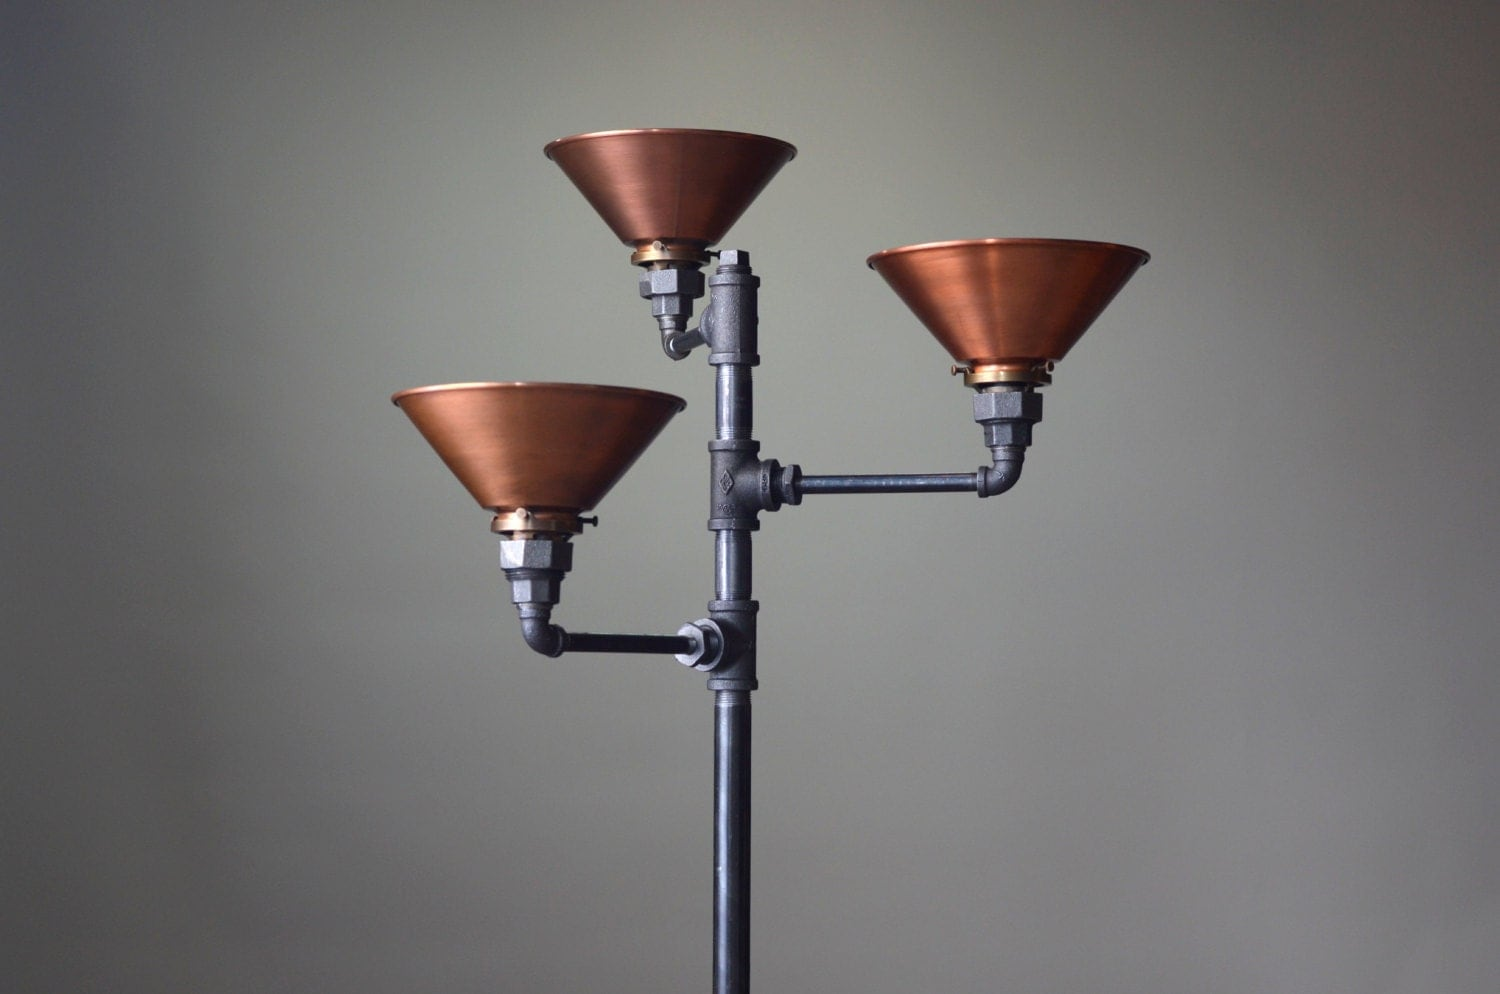 torchiere floor lamp copper shade industrial floor lamp With torchiere floor lamp industrial